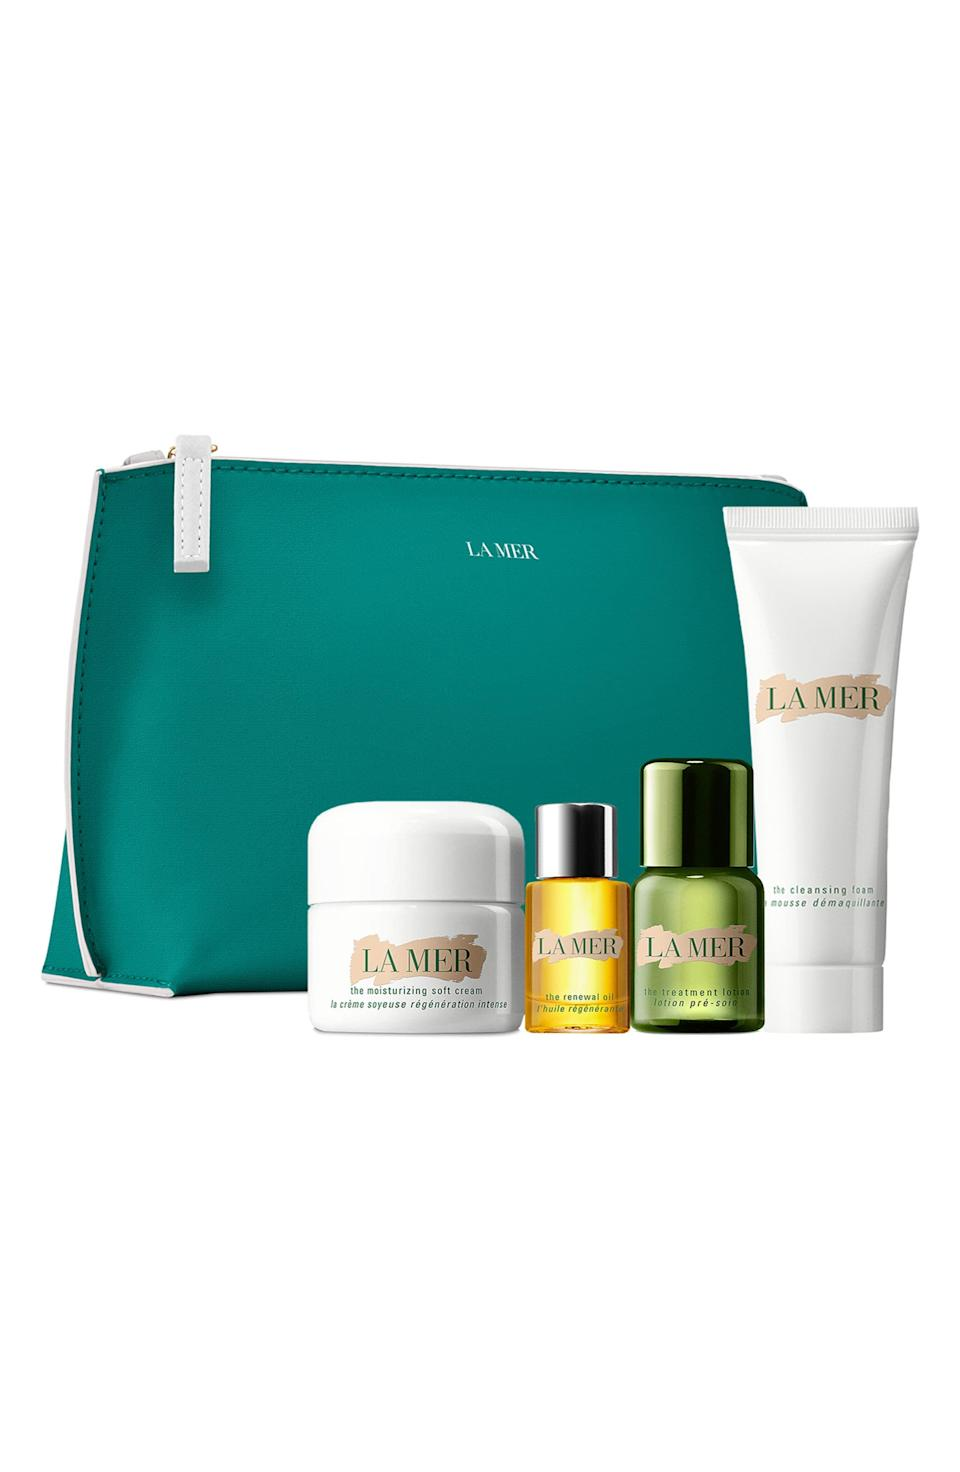 """<p><strong>La Mer</strong></p><p>nordstrom.com</p><p><strong>$95.00</strong></p><p><a href=""""https://go.redirectingat.com?id=74968X1596630&url=https%3A%2F%2Fwww.nordstrom.com%2Fs%2Fla-mer-travel-size-the-moisturizing-soft-cream-set-182-value%2F5919476&sref=https%3A%2F%2Fwww.elle.com%2Fbeauty%2Fg36944650%2Fnorstrom-anniversary-beauty-sale-2021%2F"""" rel=""""nofollow noopener"""" target=""""_blank"""" data-ylk=""""slk:Shop Now"""" class=""""link rapid-noclick-resp"""">Shop Now</a></p><p>You know you've always wanted to try La Mer, so pick up an entire set at a dramatically reduced price. As you apply the products, you'll feel fancier than you ever been in your life.</p>"""